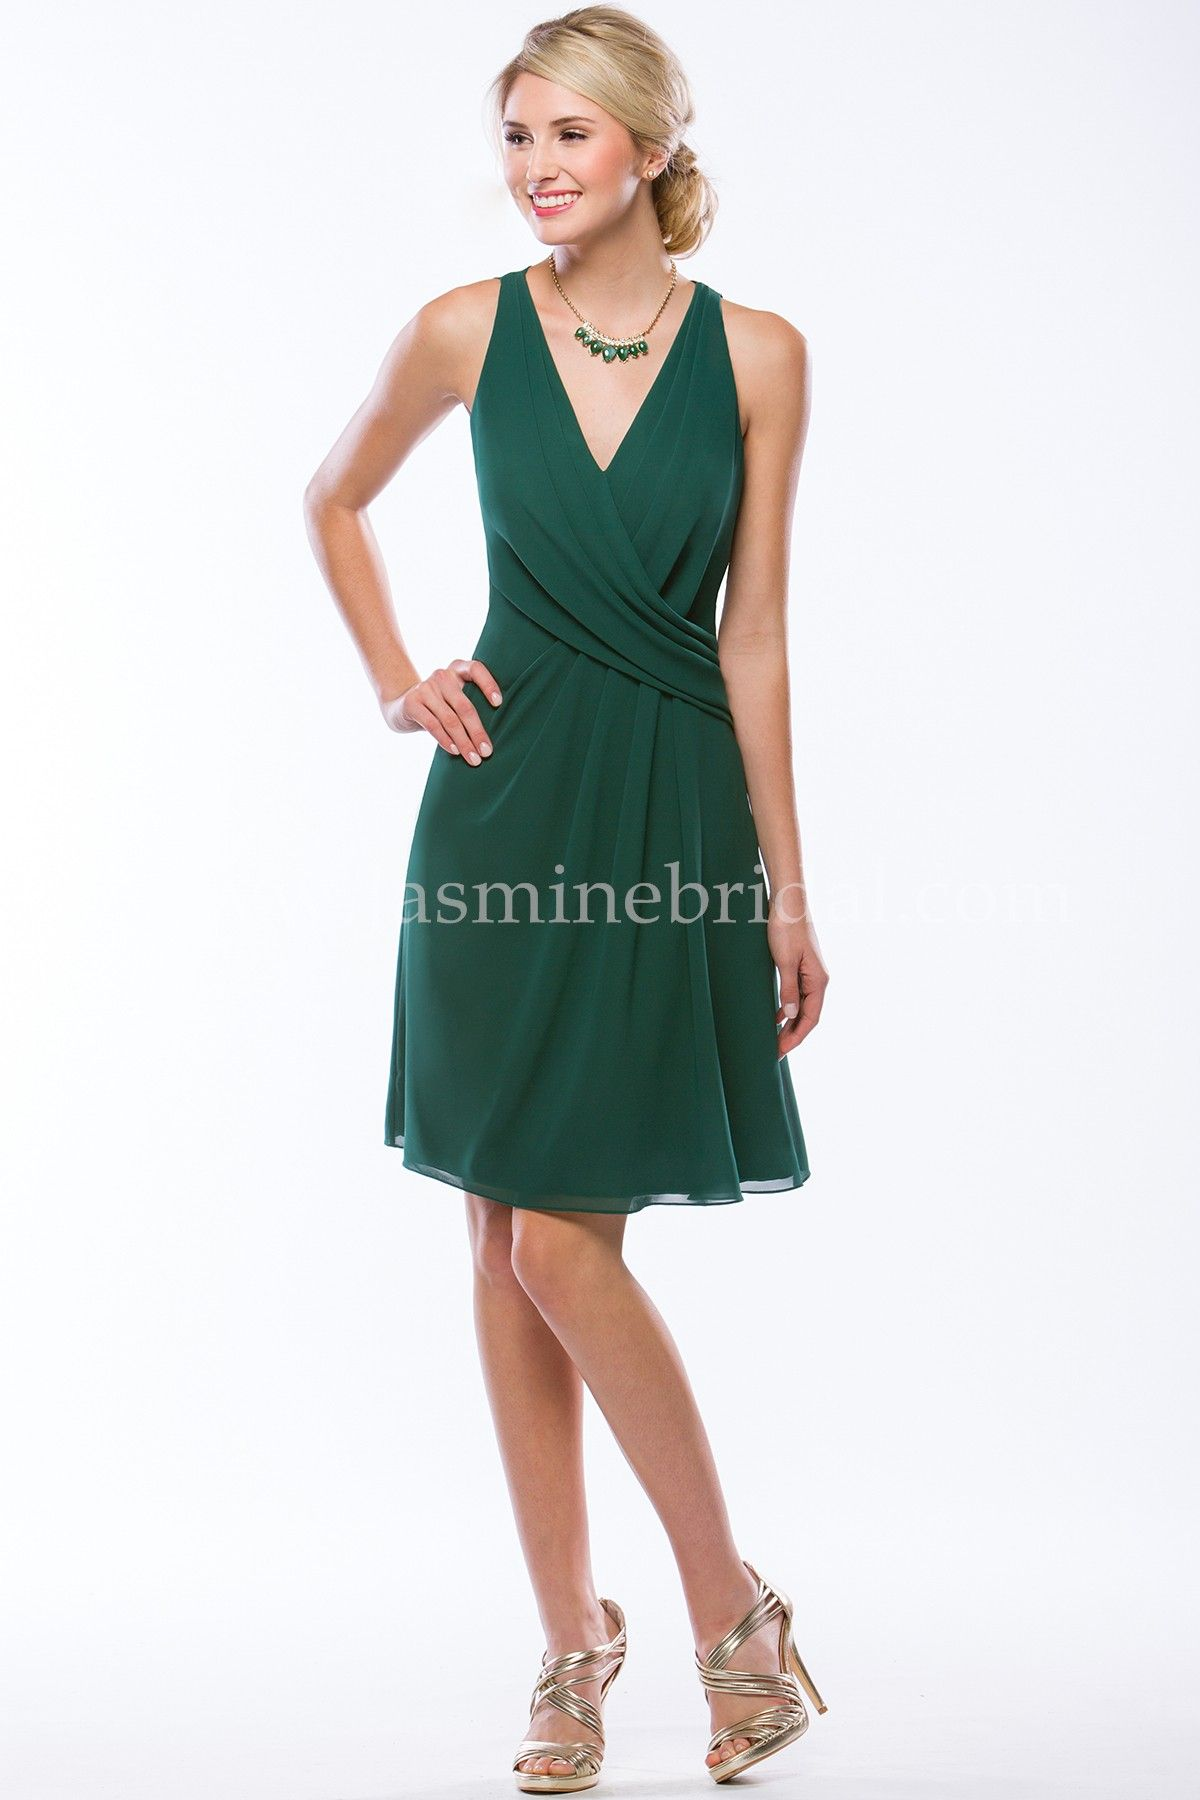 Jasmine bridal bridesmaid dress jasmine bridesmaids style p176056k jasmine bridal bridesmaid dress jasmine bridesmaids style p176056k in hunter green this georgette bridesmaid ombrellifo Images